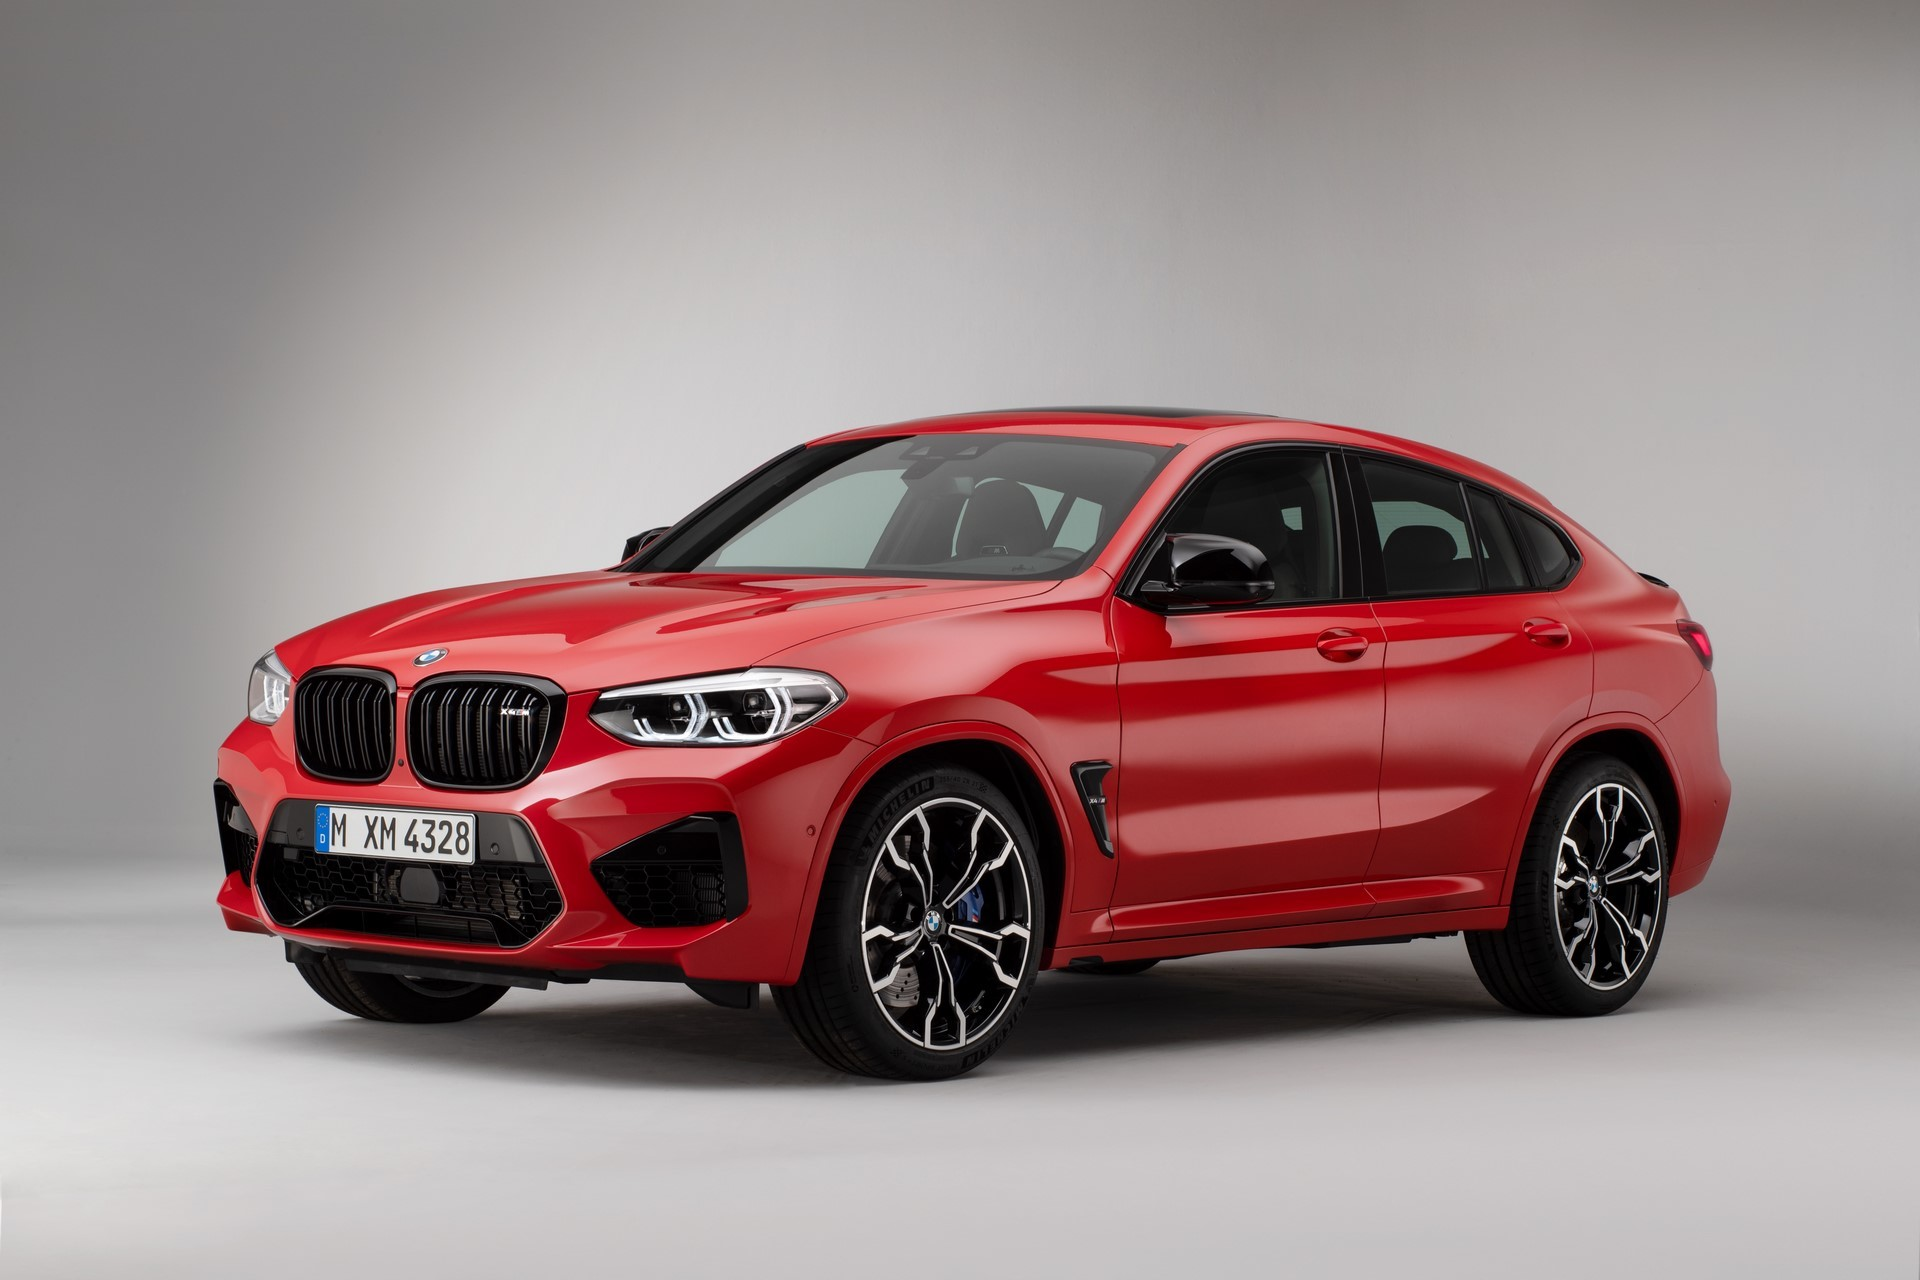 BMW X3 M and X4 M 2019 (209)